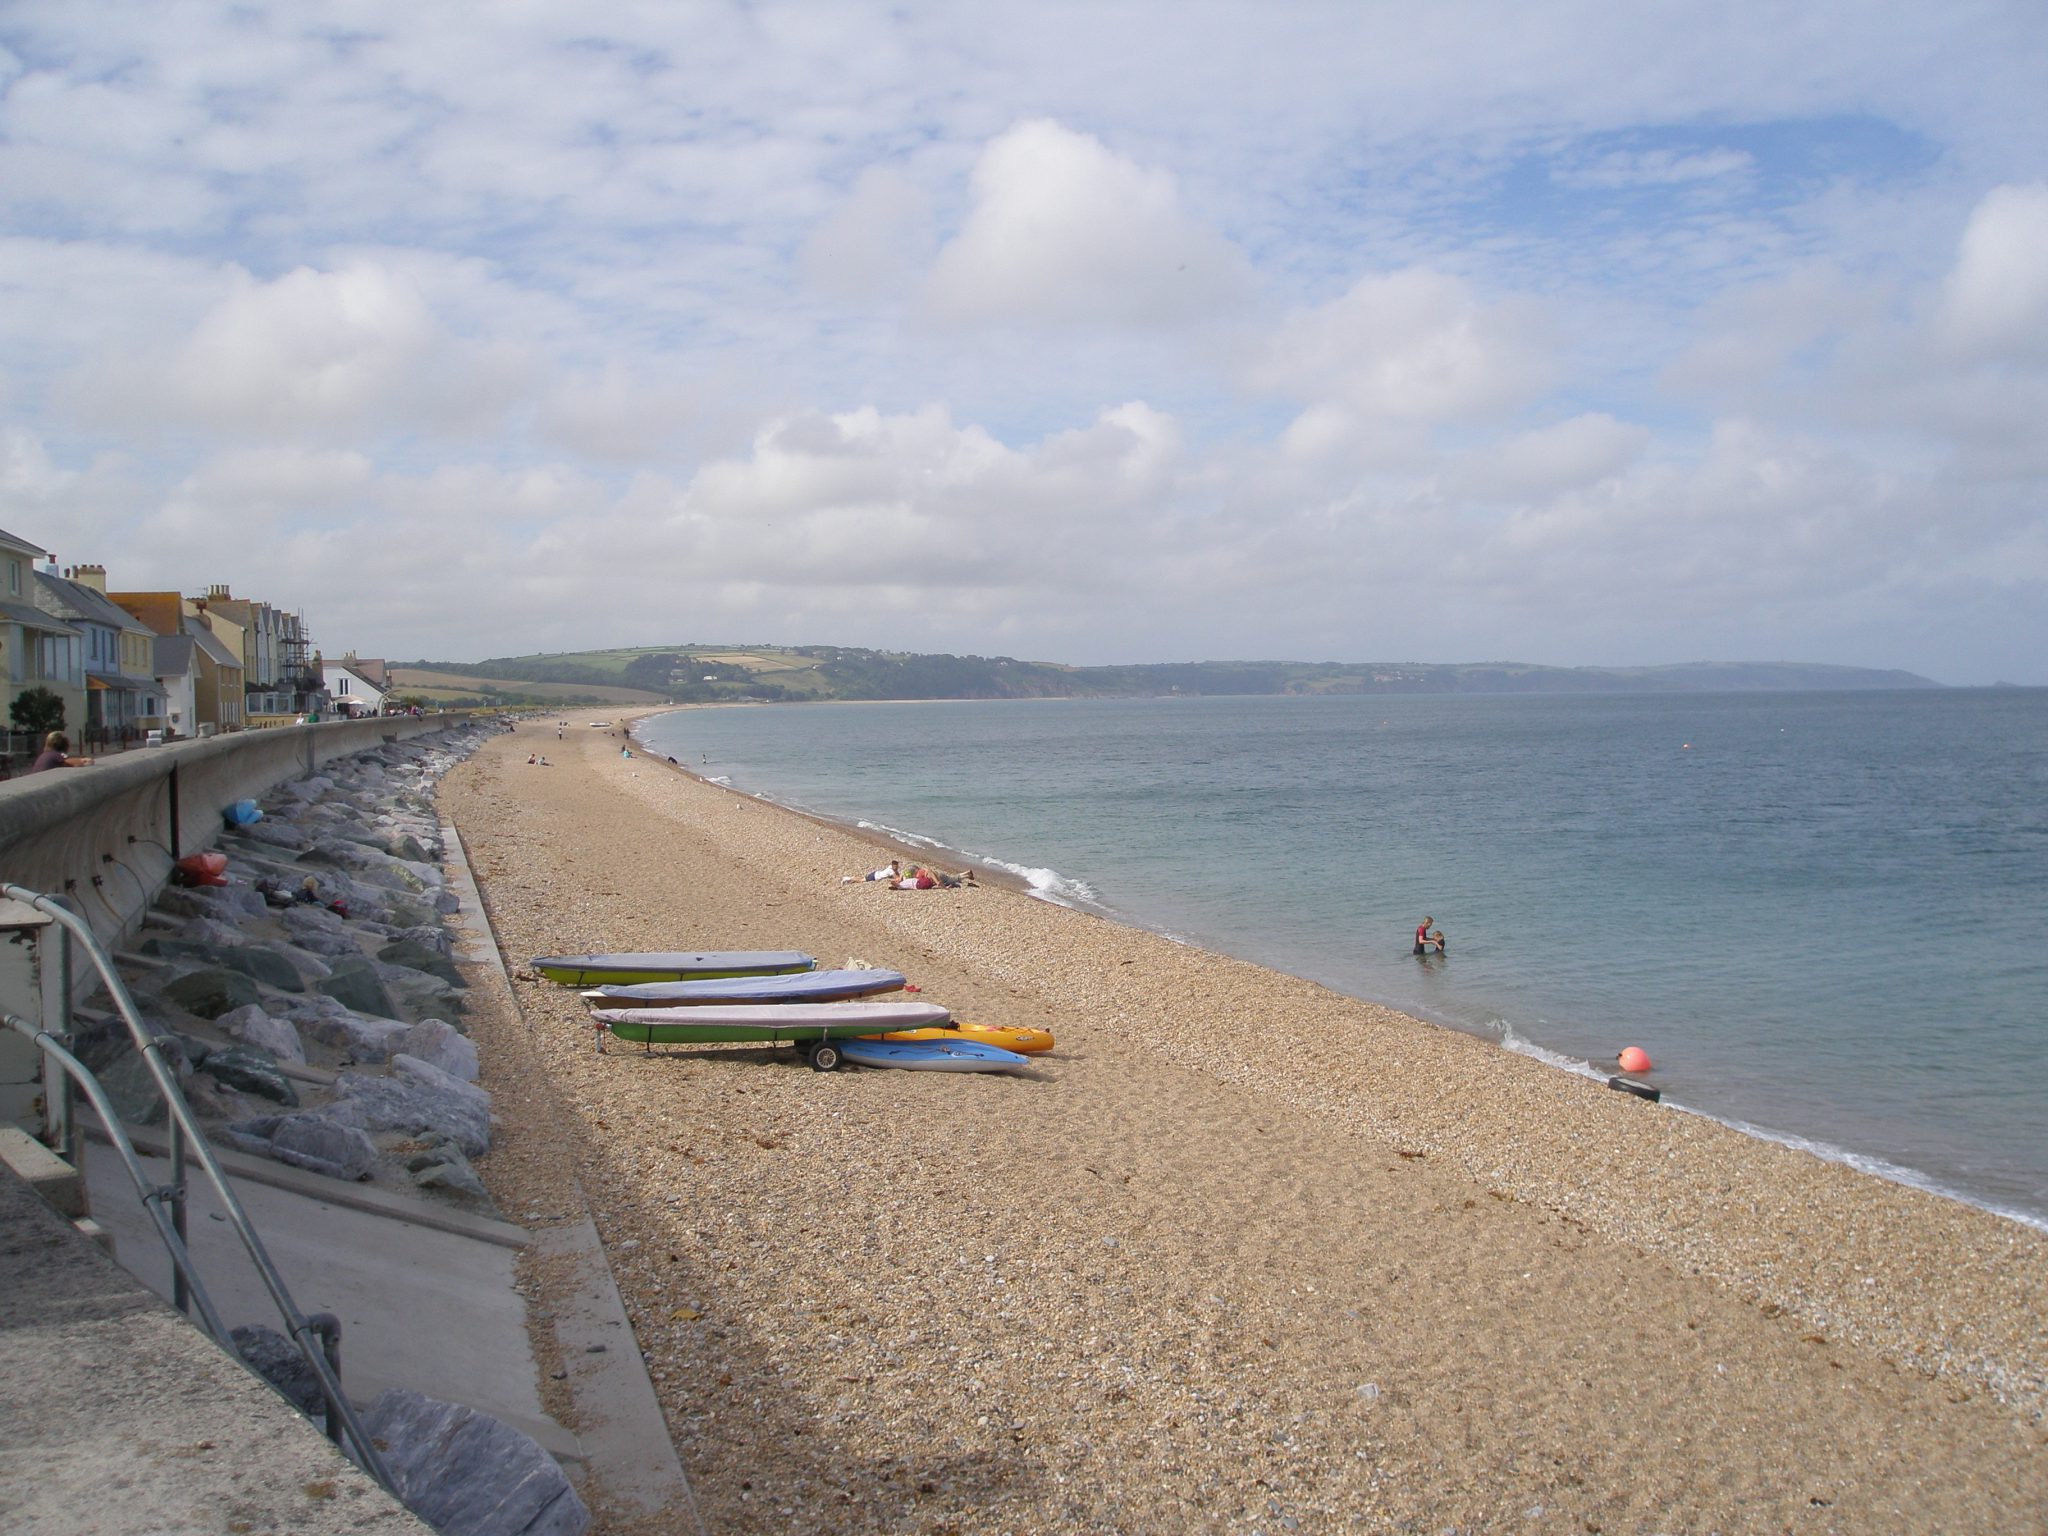 I'm in Torcross, looking northwards up along the long curve of Slapton Sands.